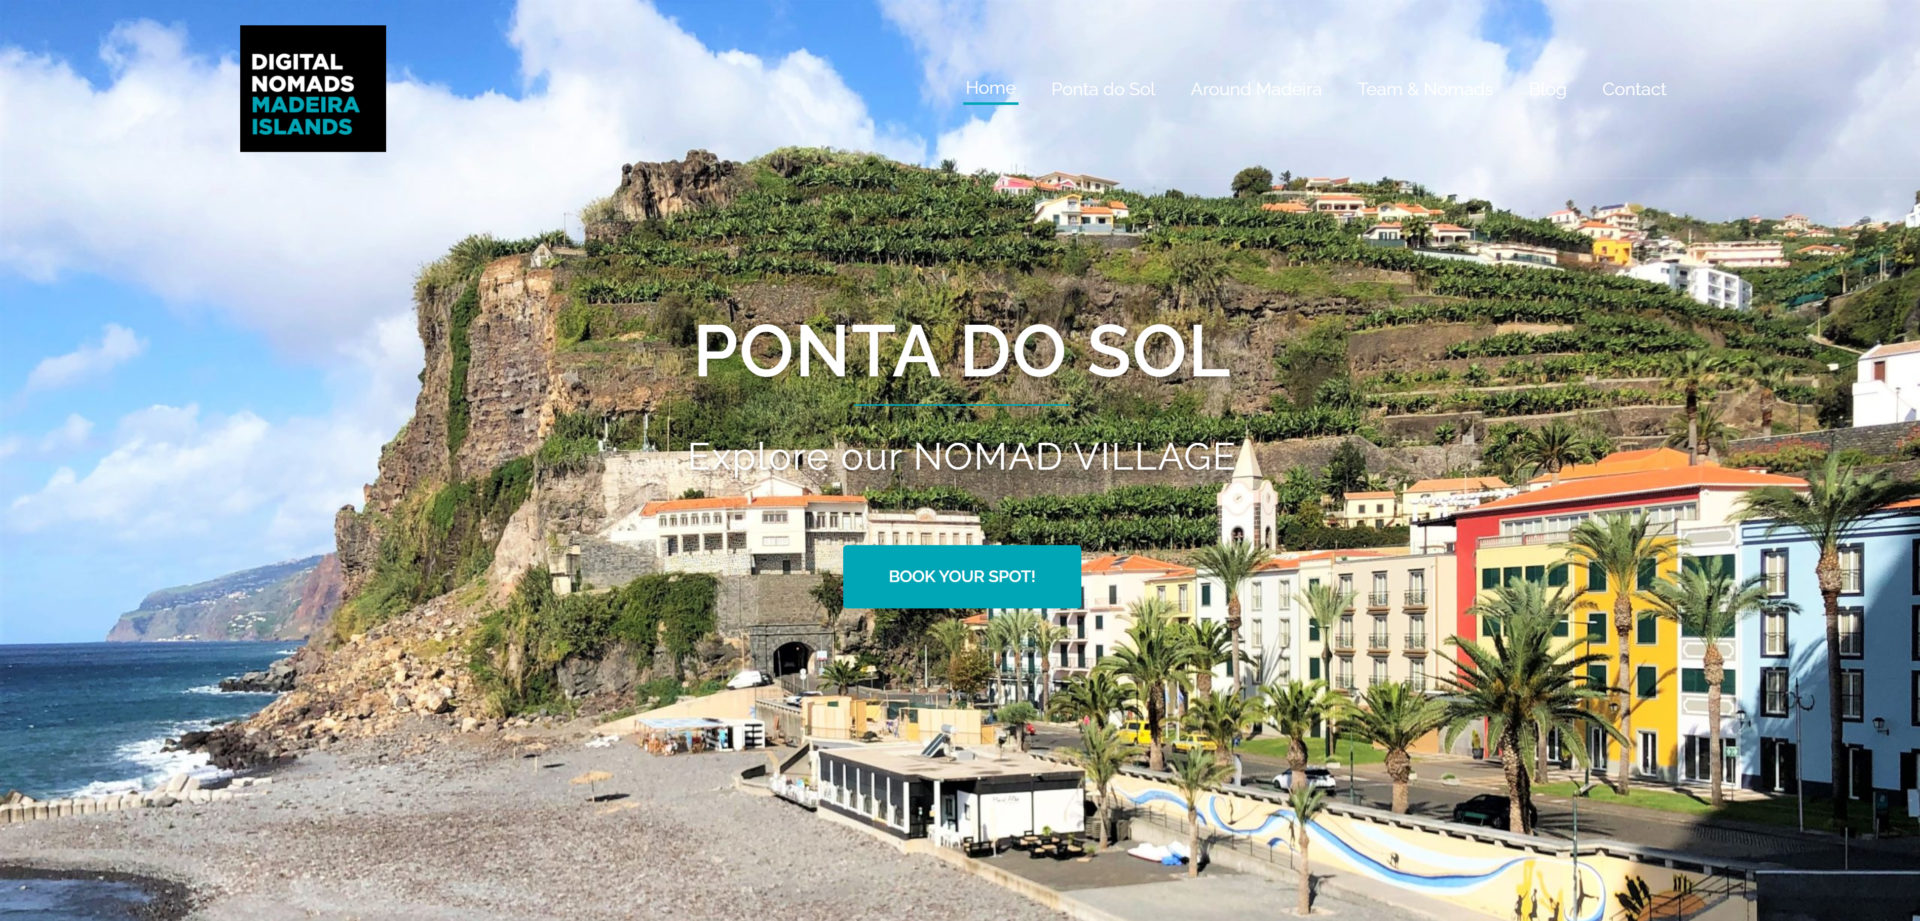 Europe's 'first' digital nomad village to open in Portugal in February